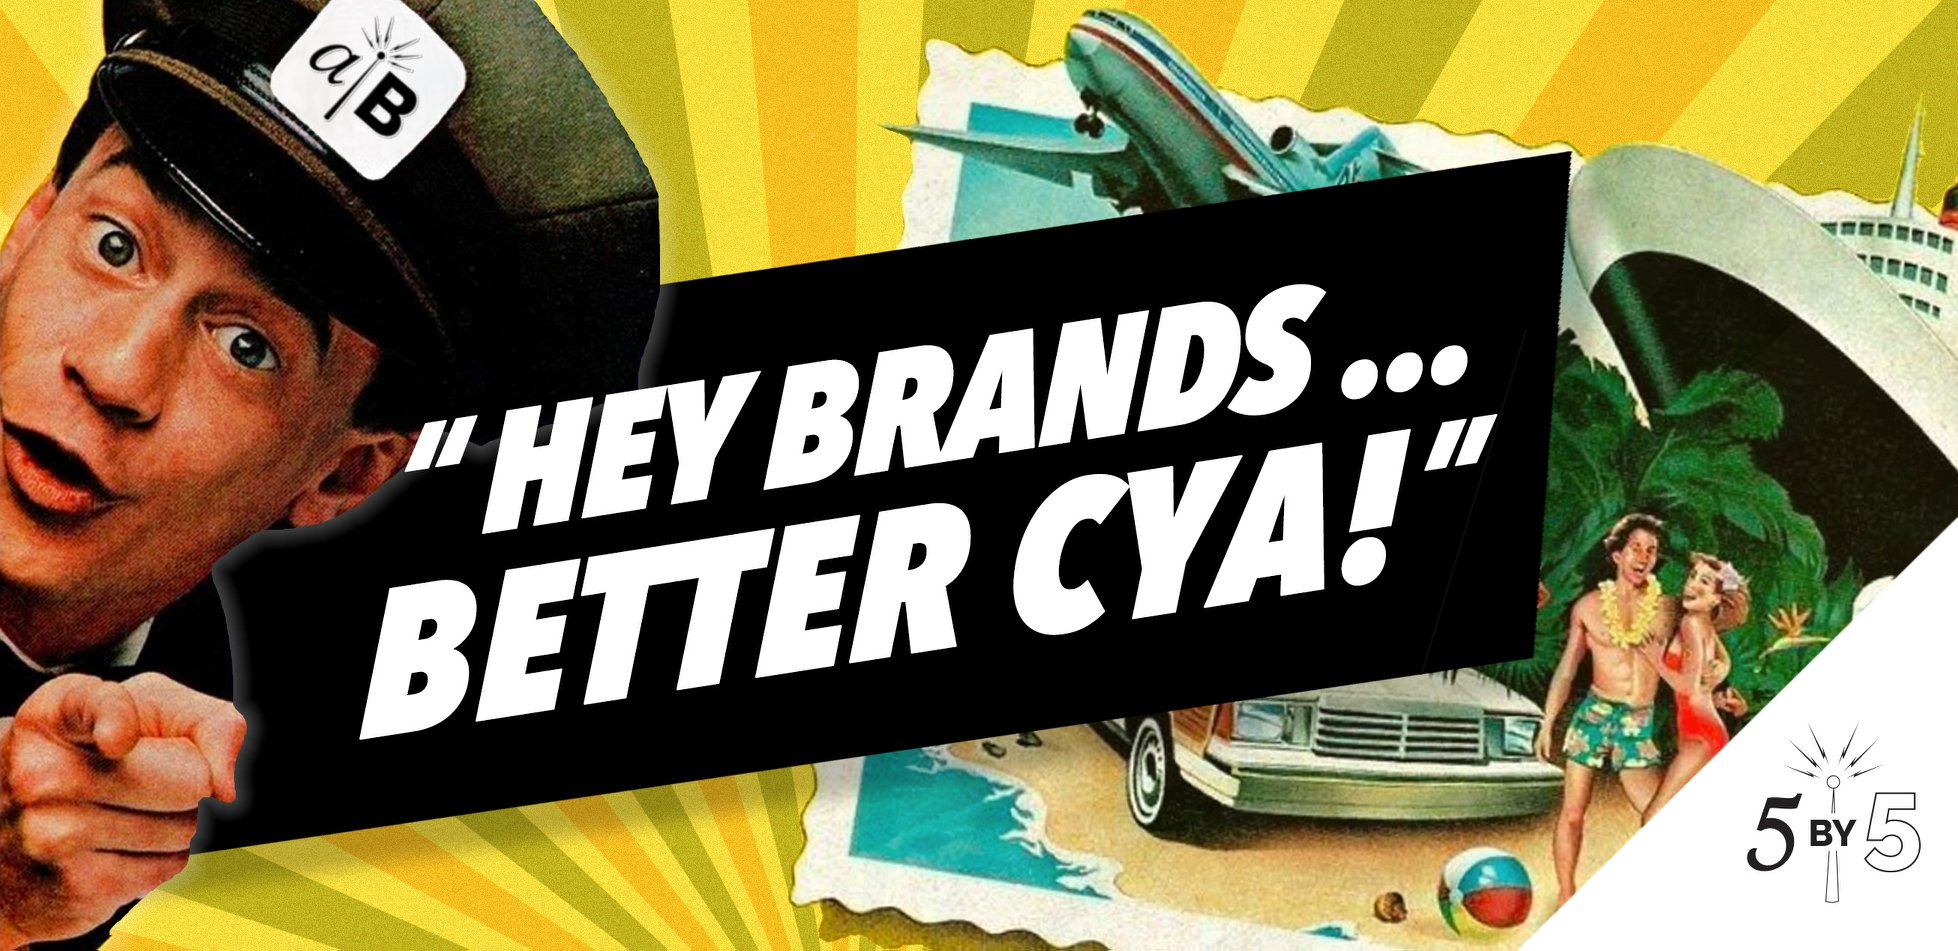 vintage poster 'hey brands...better CYA!'